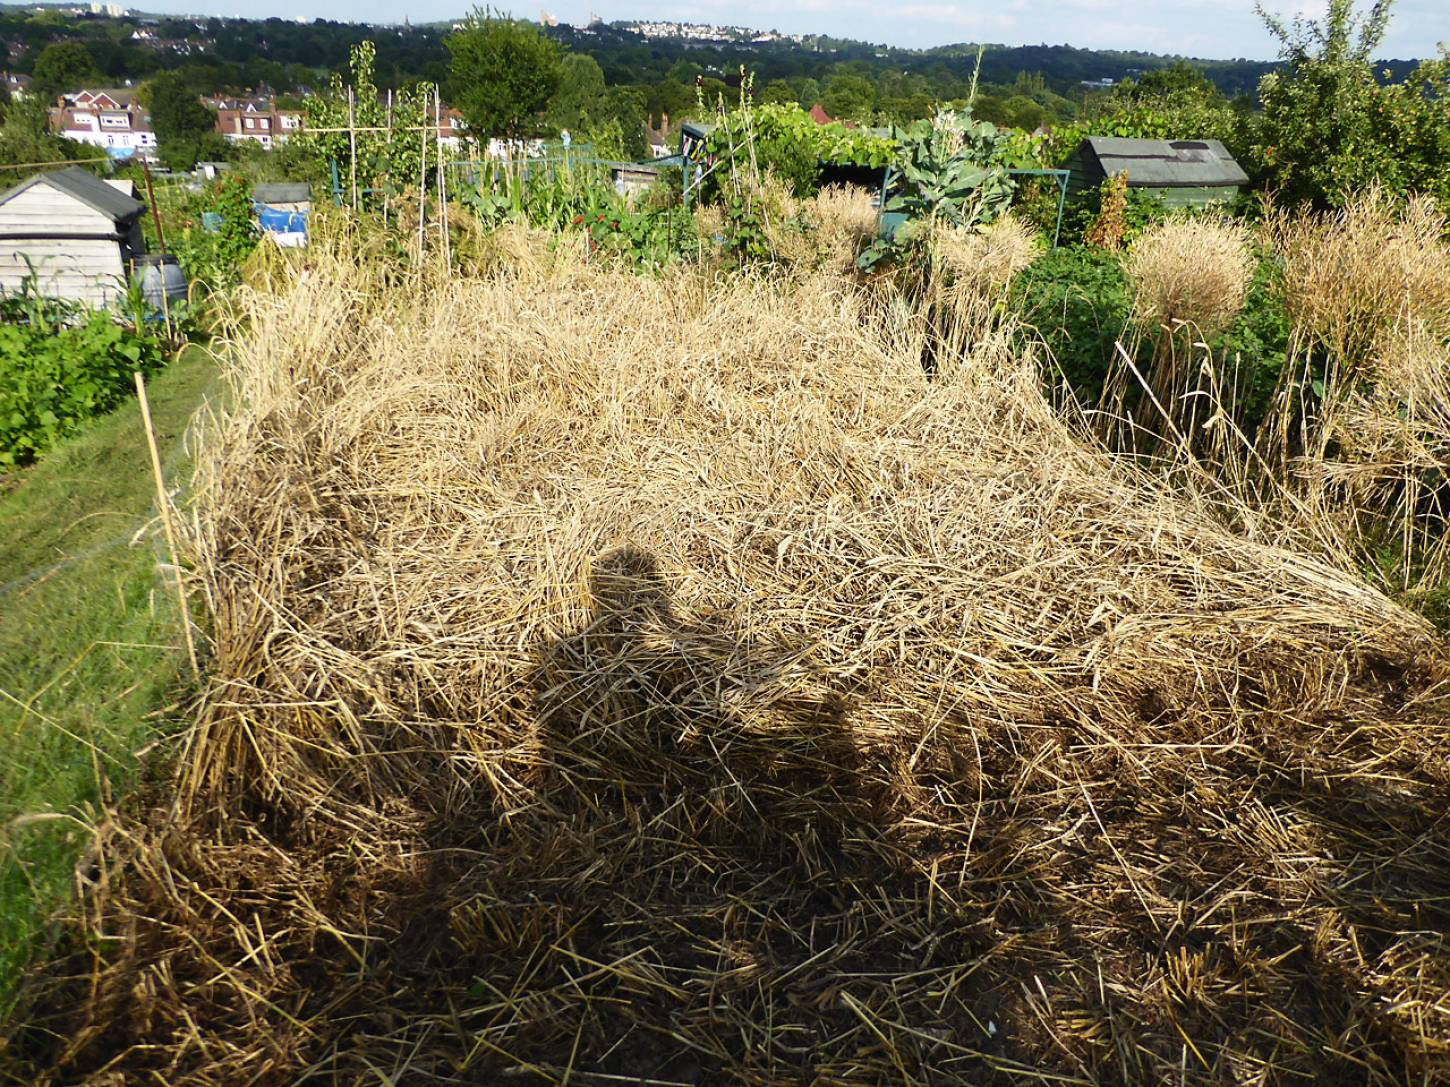 bit of a lodged pickle to be sorted, plot harvest 2017 - 5:40pm&nbsp;25<sup>th</sup>&nbsp;Jul.&nbsp;'17  <a href='http://maps.google.com/?t=h&q=51.444156,-0.101317&z=18&output=embed' target=_blank><img src='http://www.brockwell-bake.org.uk/img/marker.png' style='border:none;vertical-align:top' height=16px></a>